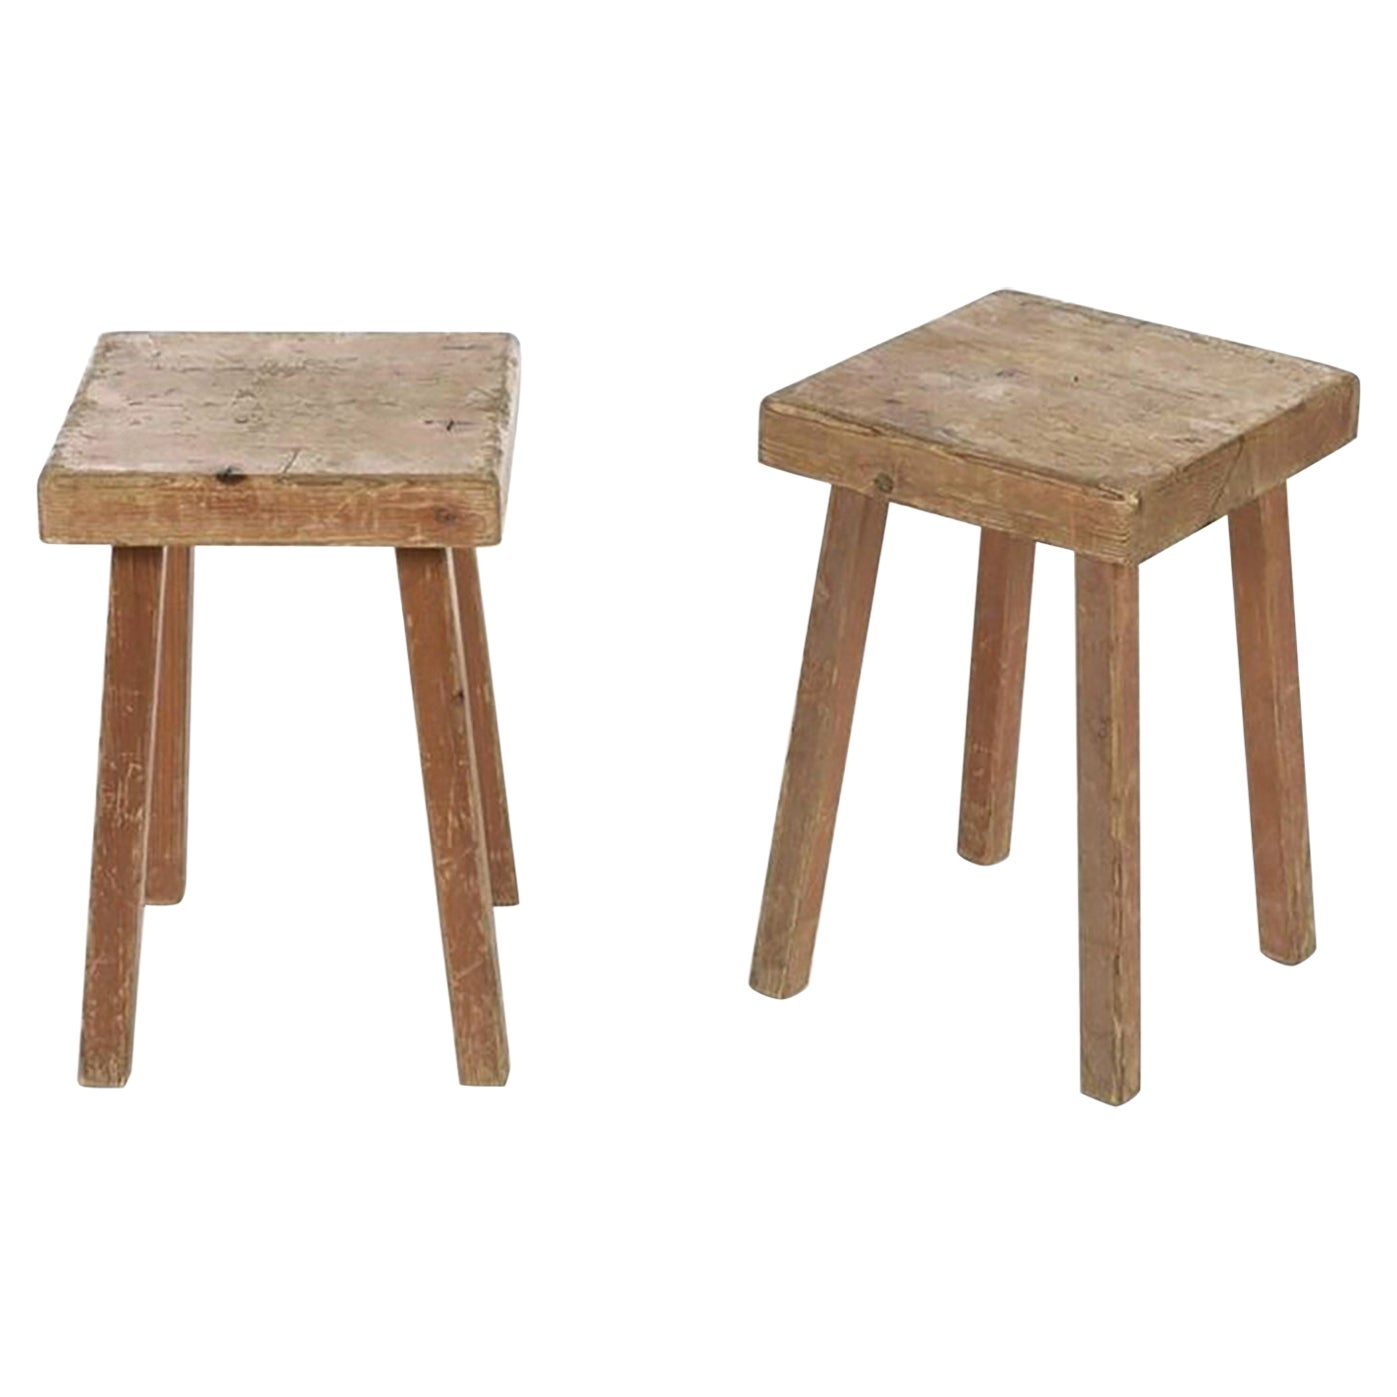 Charlotte Perriand's Square Stools